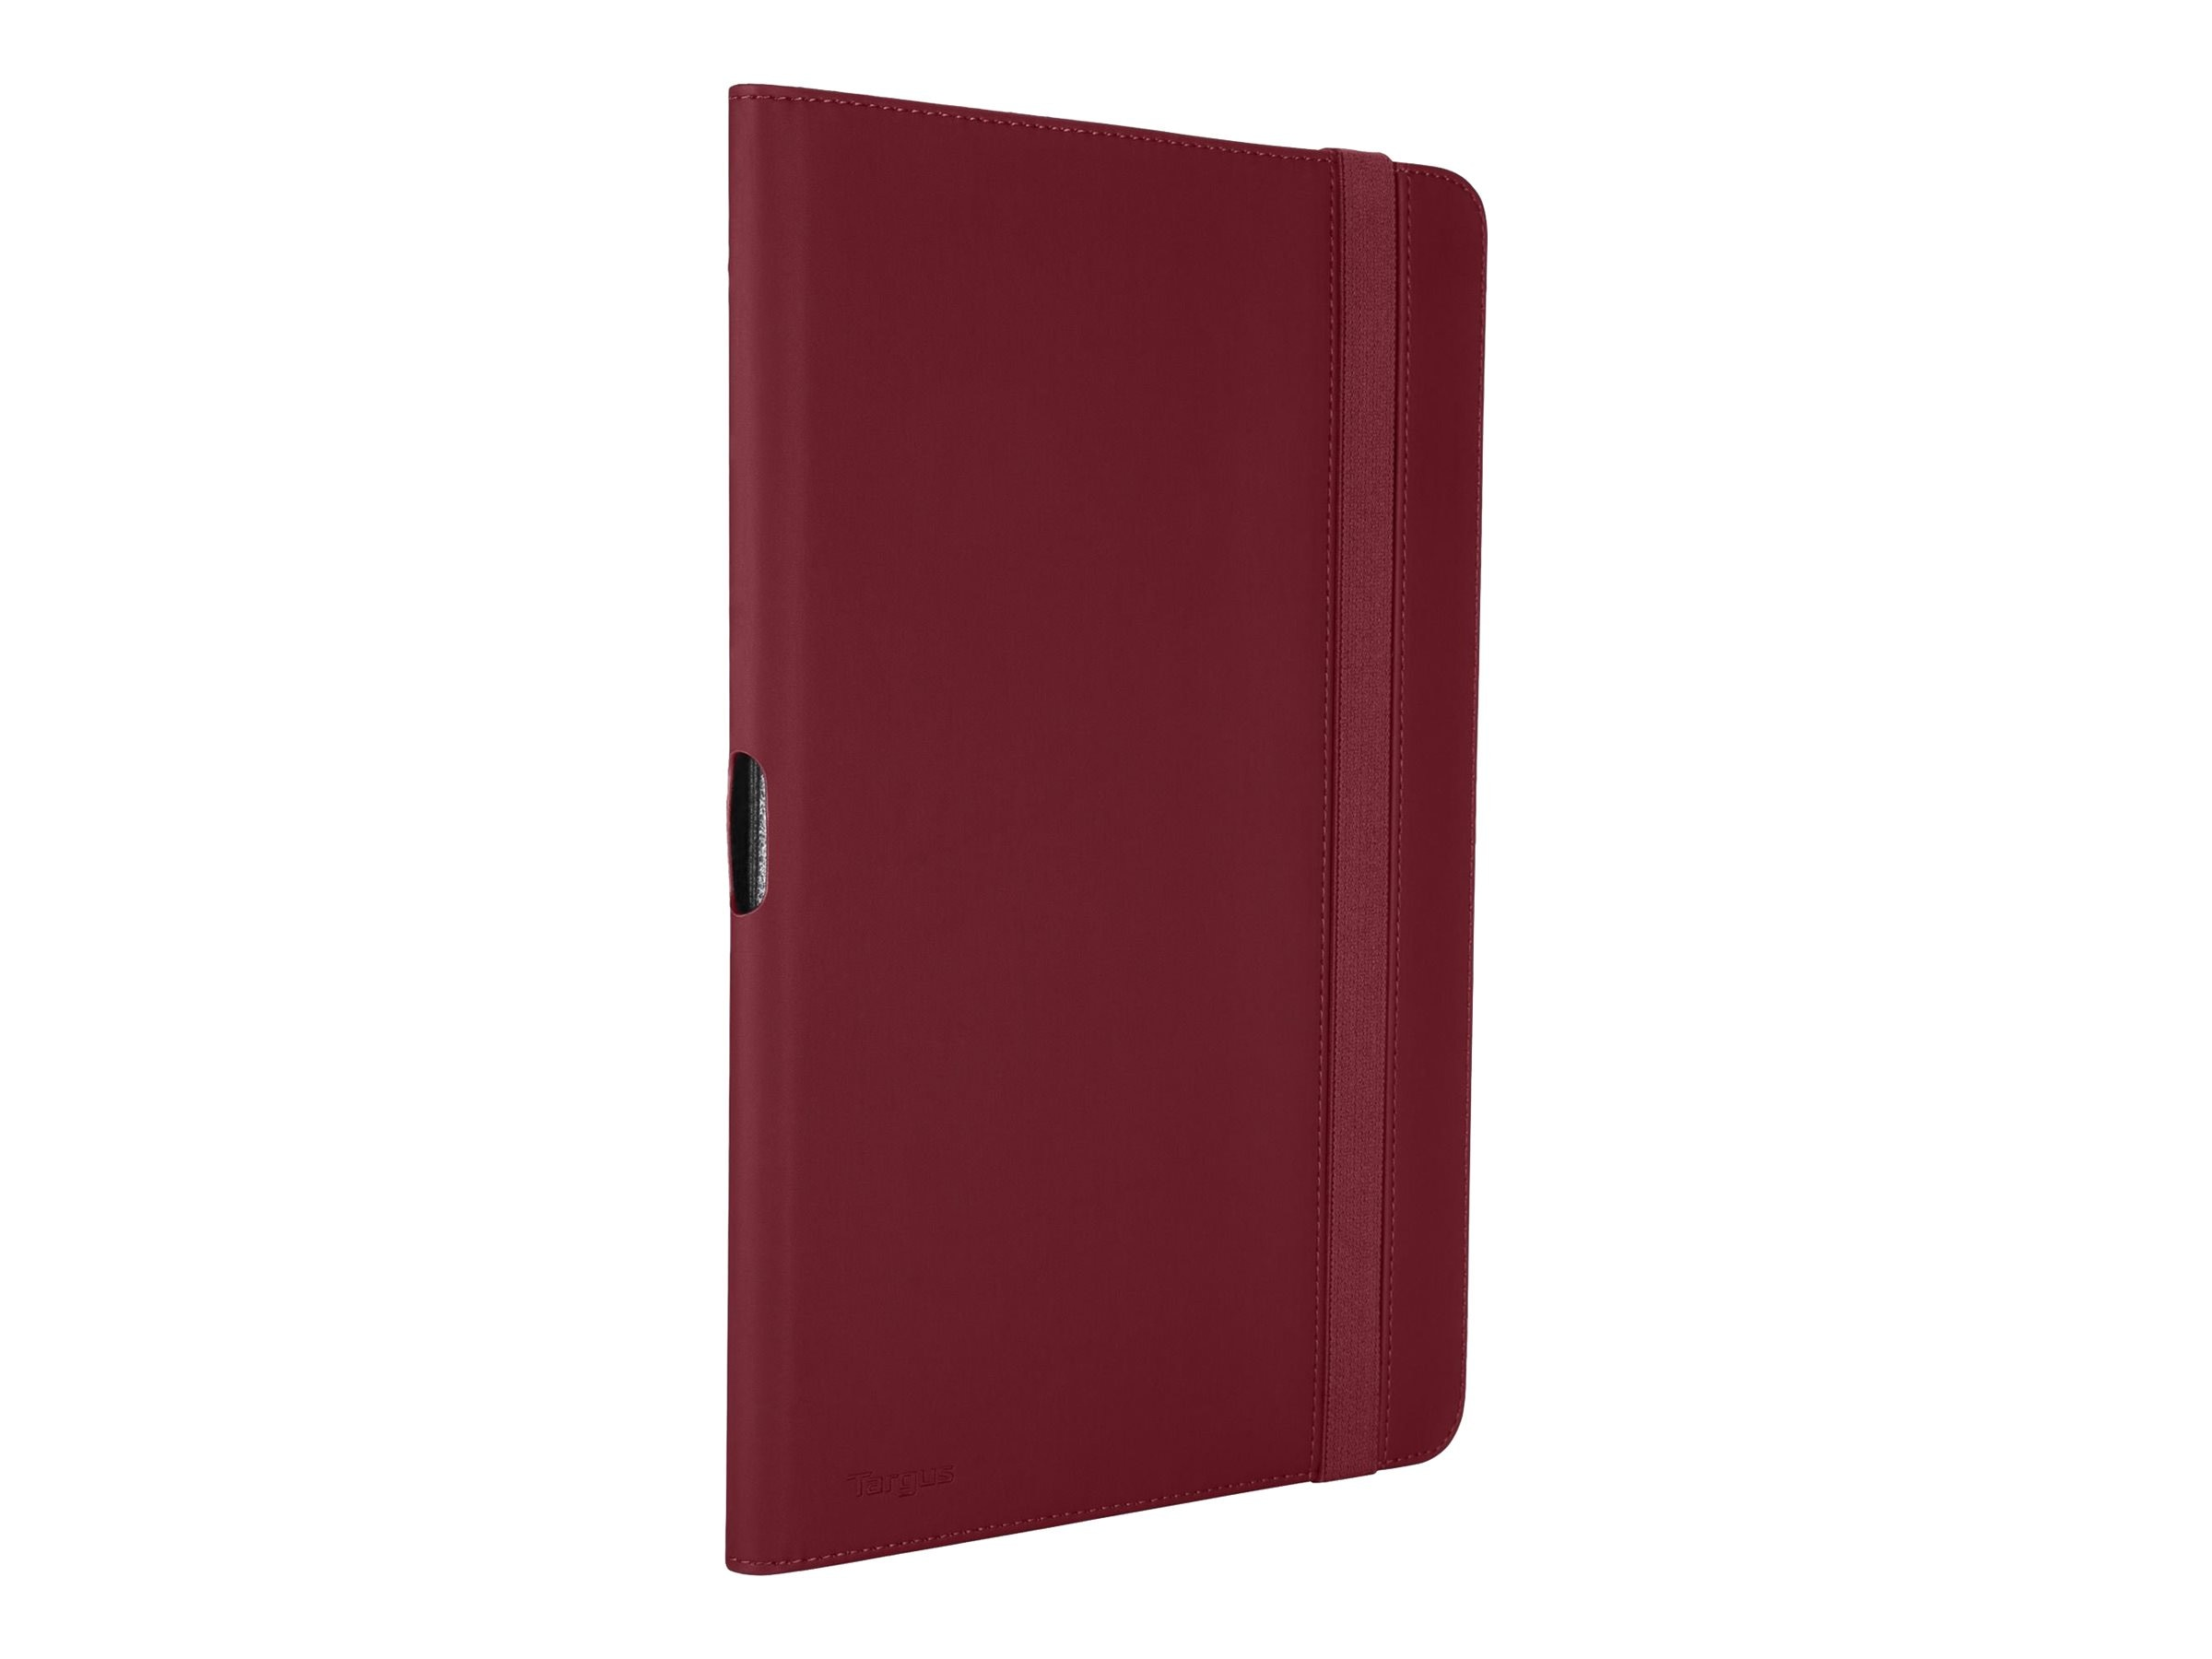 Targus Kickstand Case for Samsung Galaxy 10.1 Tablet, Crimson Red